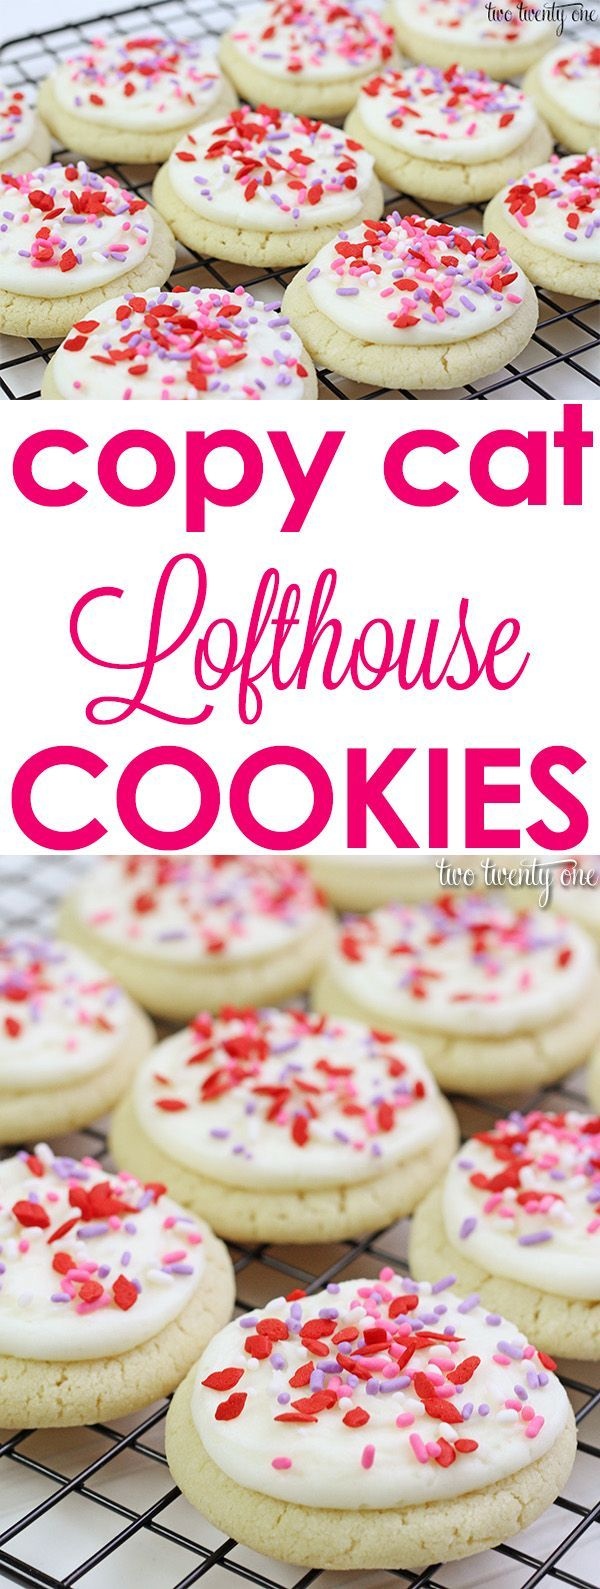 Copy cat Lofthouse cookie recipe! The softest, pillowy sugar cookies!